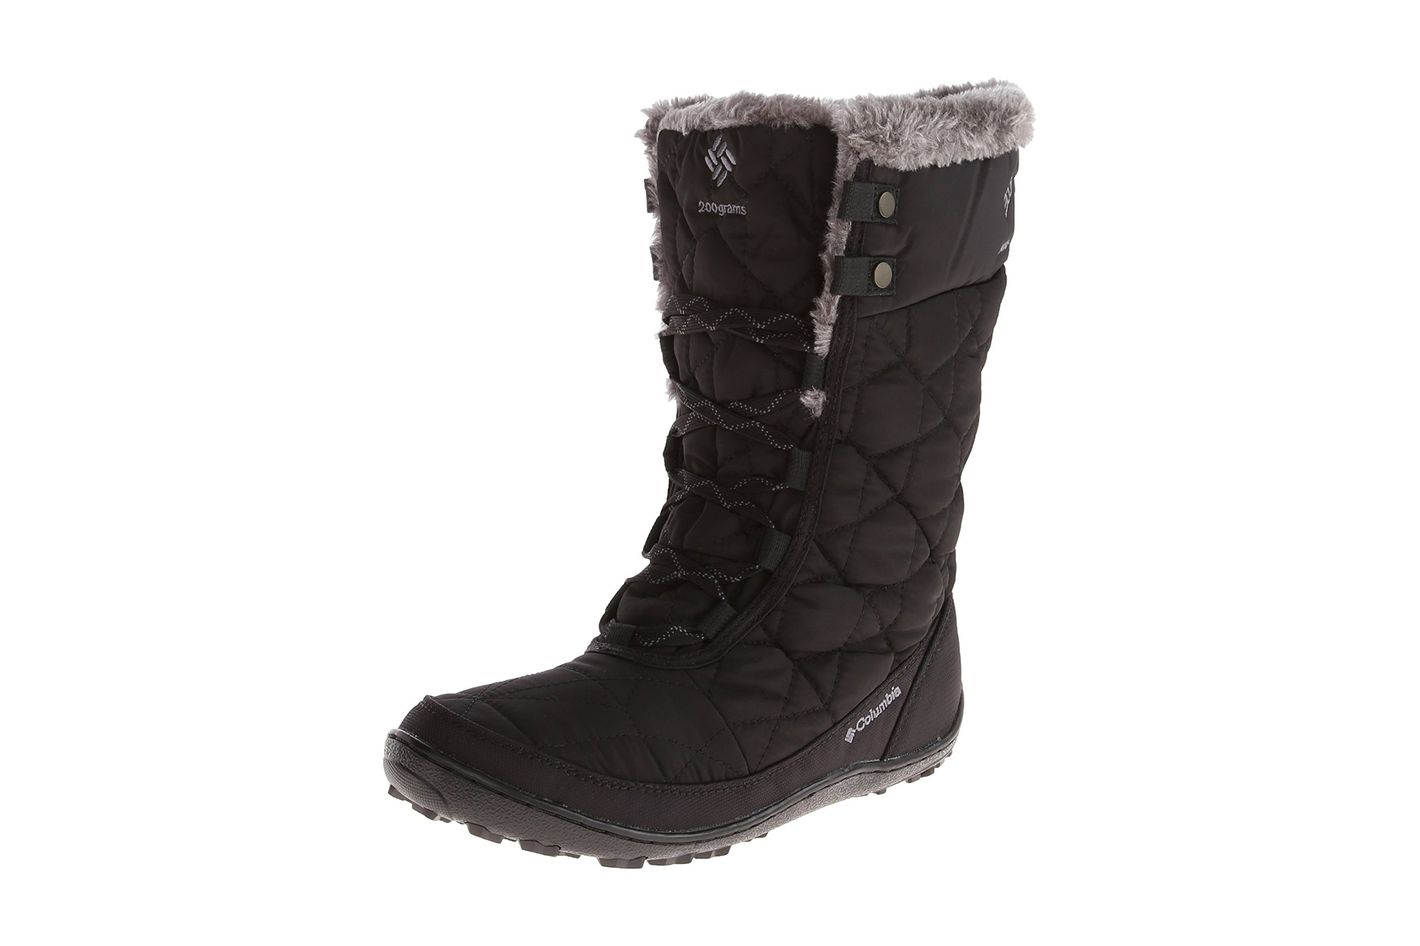 266af573da7 Columbia Women s Minx Mid II Omni-Heat Winter Boot